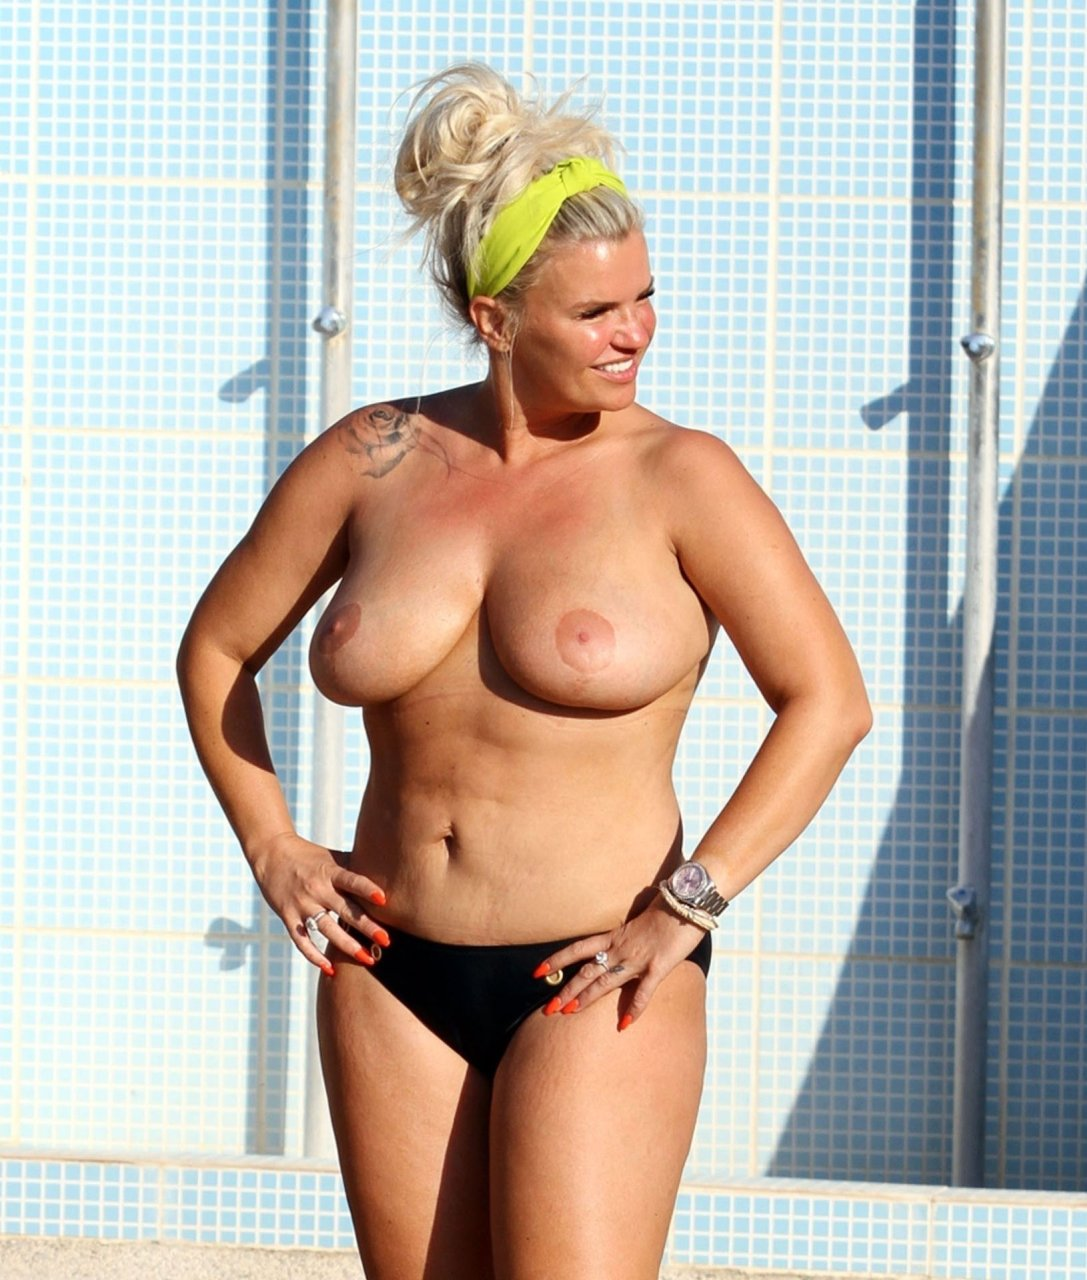 Kerry katona sex tape nsfw